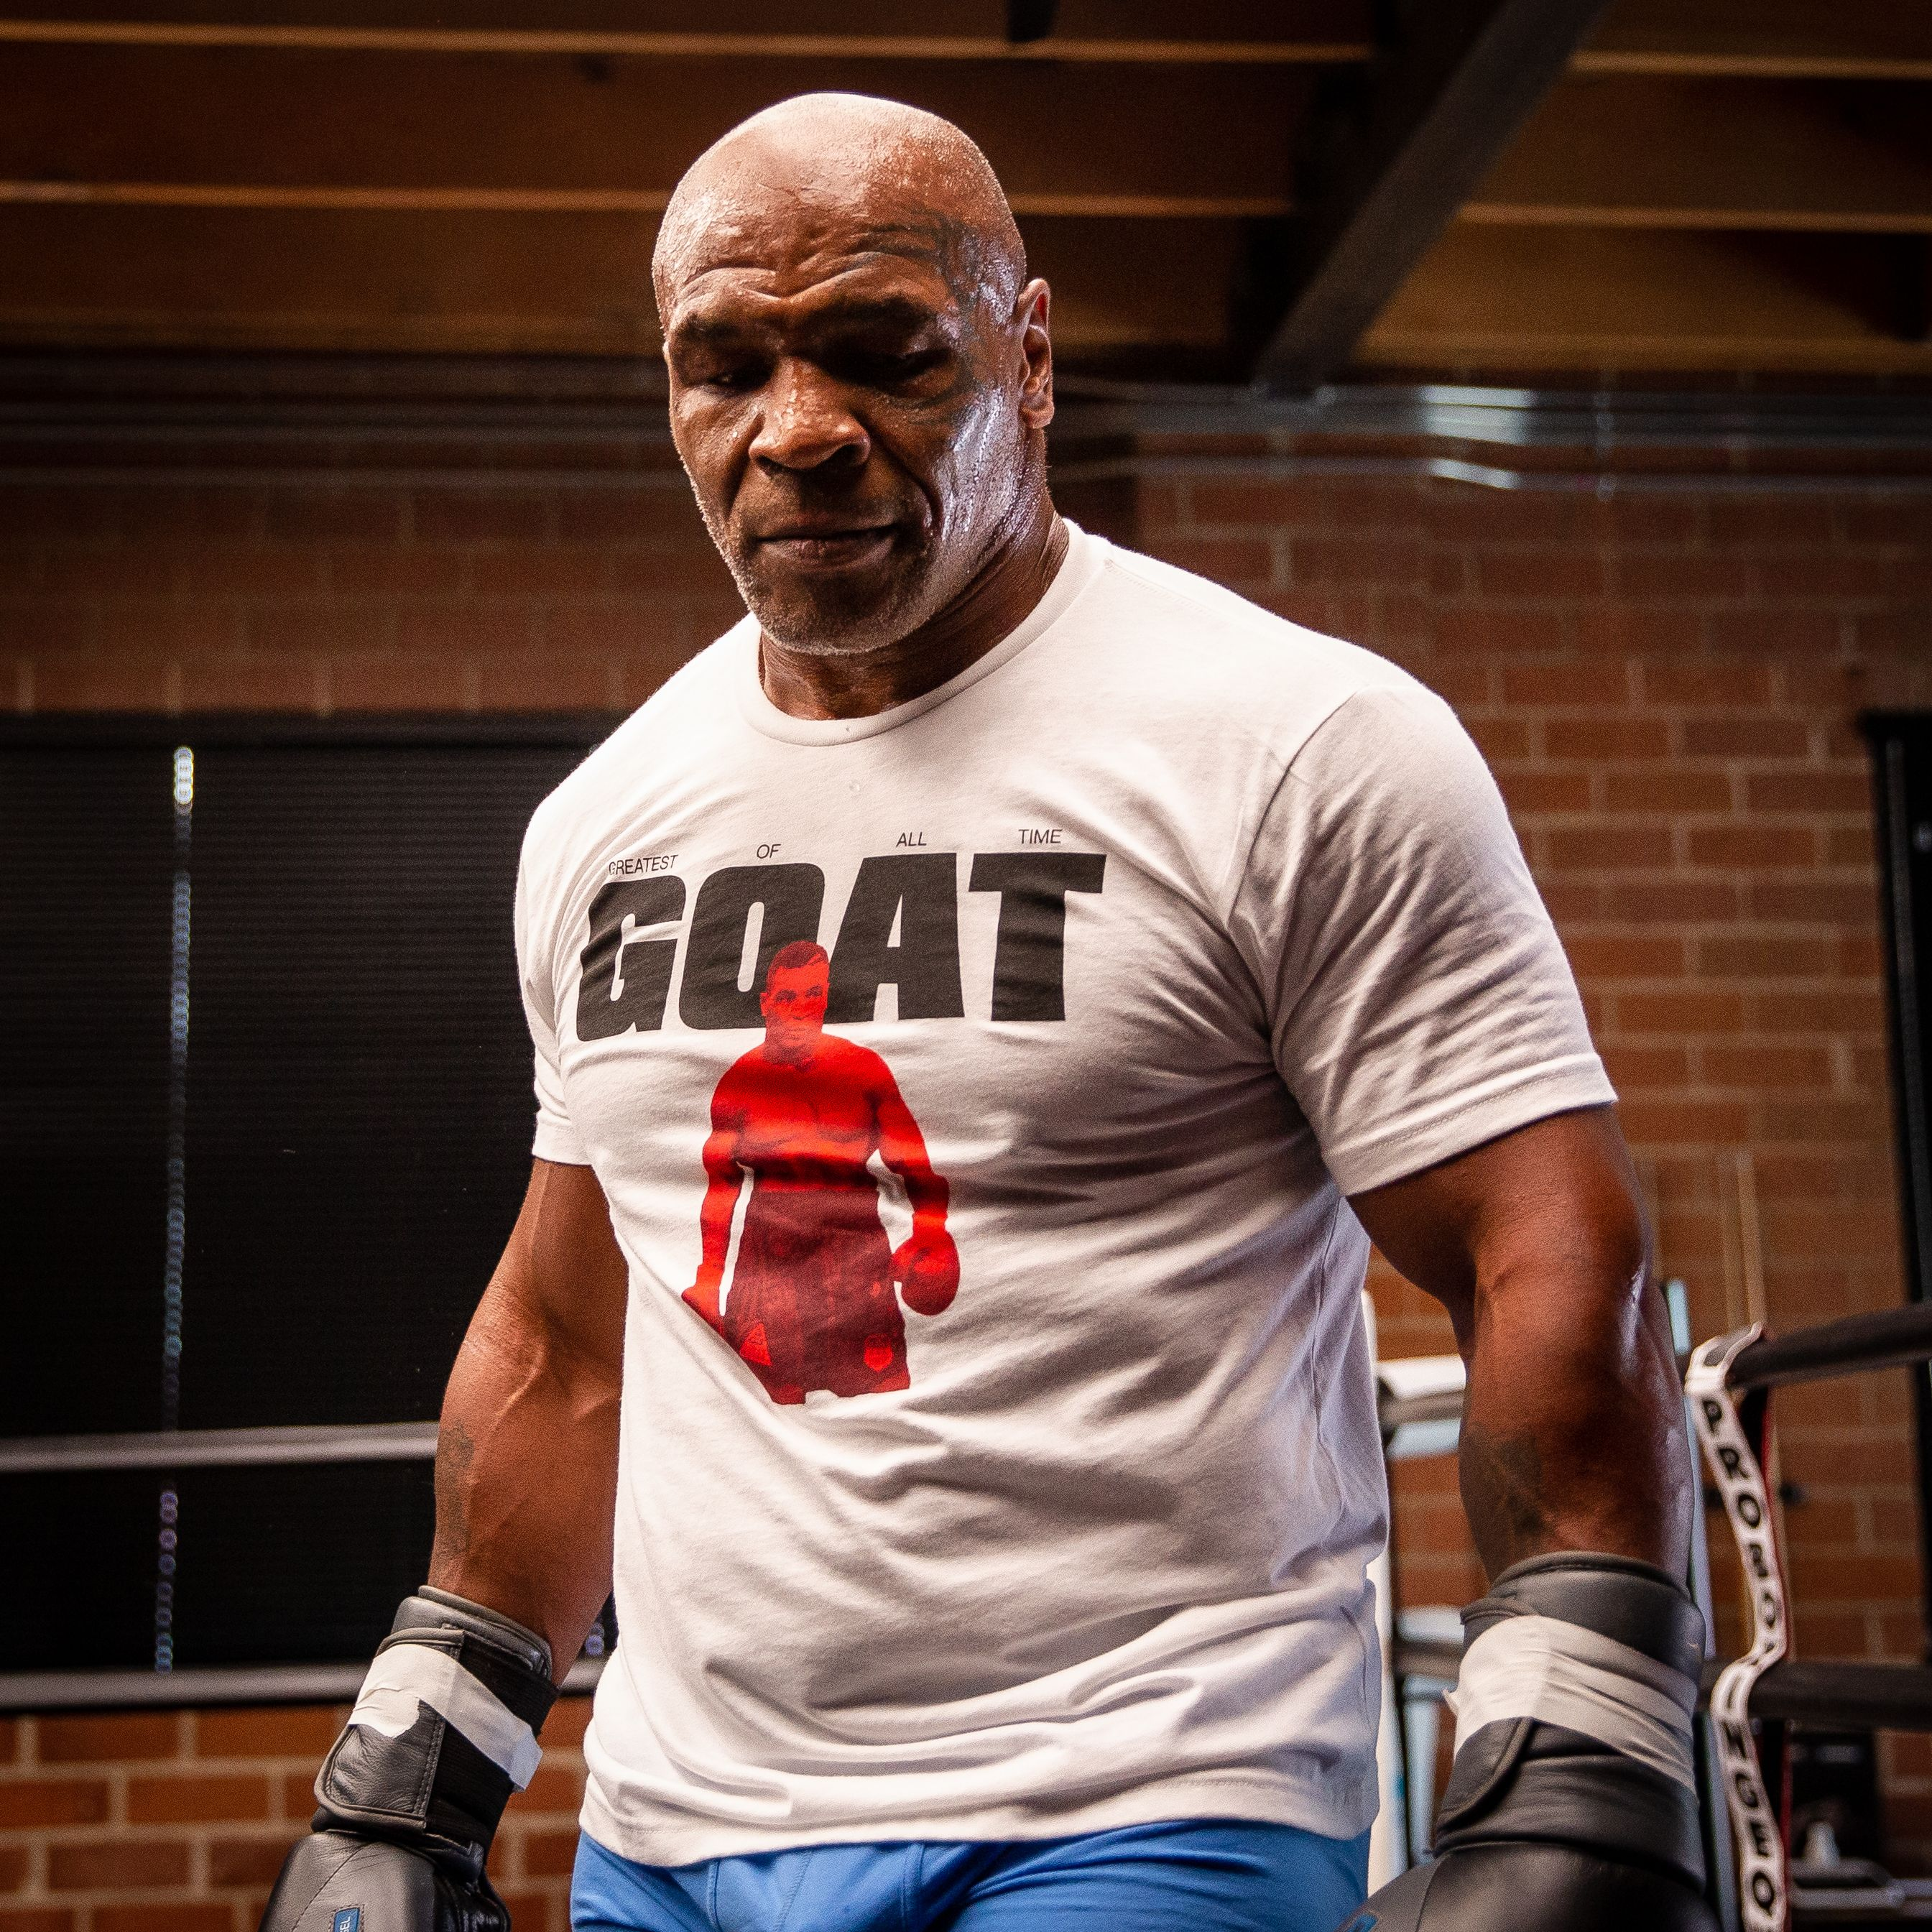 Mike Tyson returns to boxing at 54 on Saturday looking and sounding different